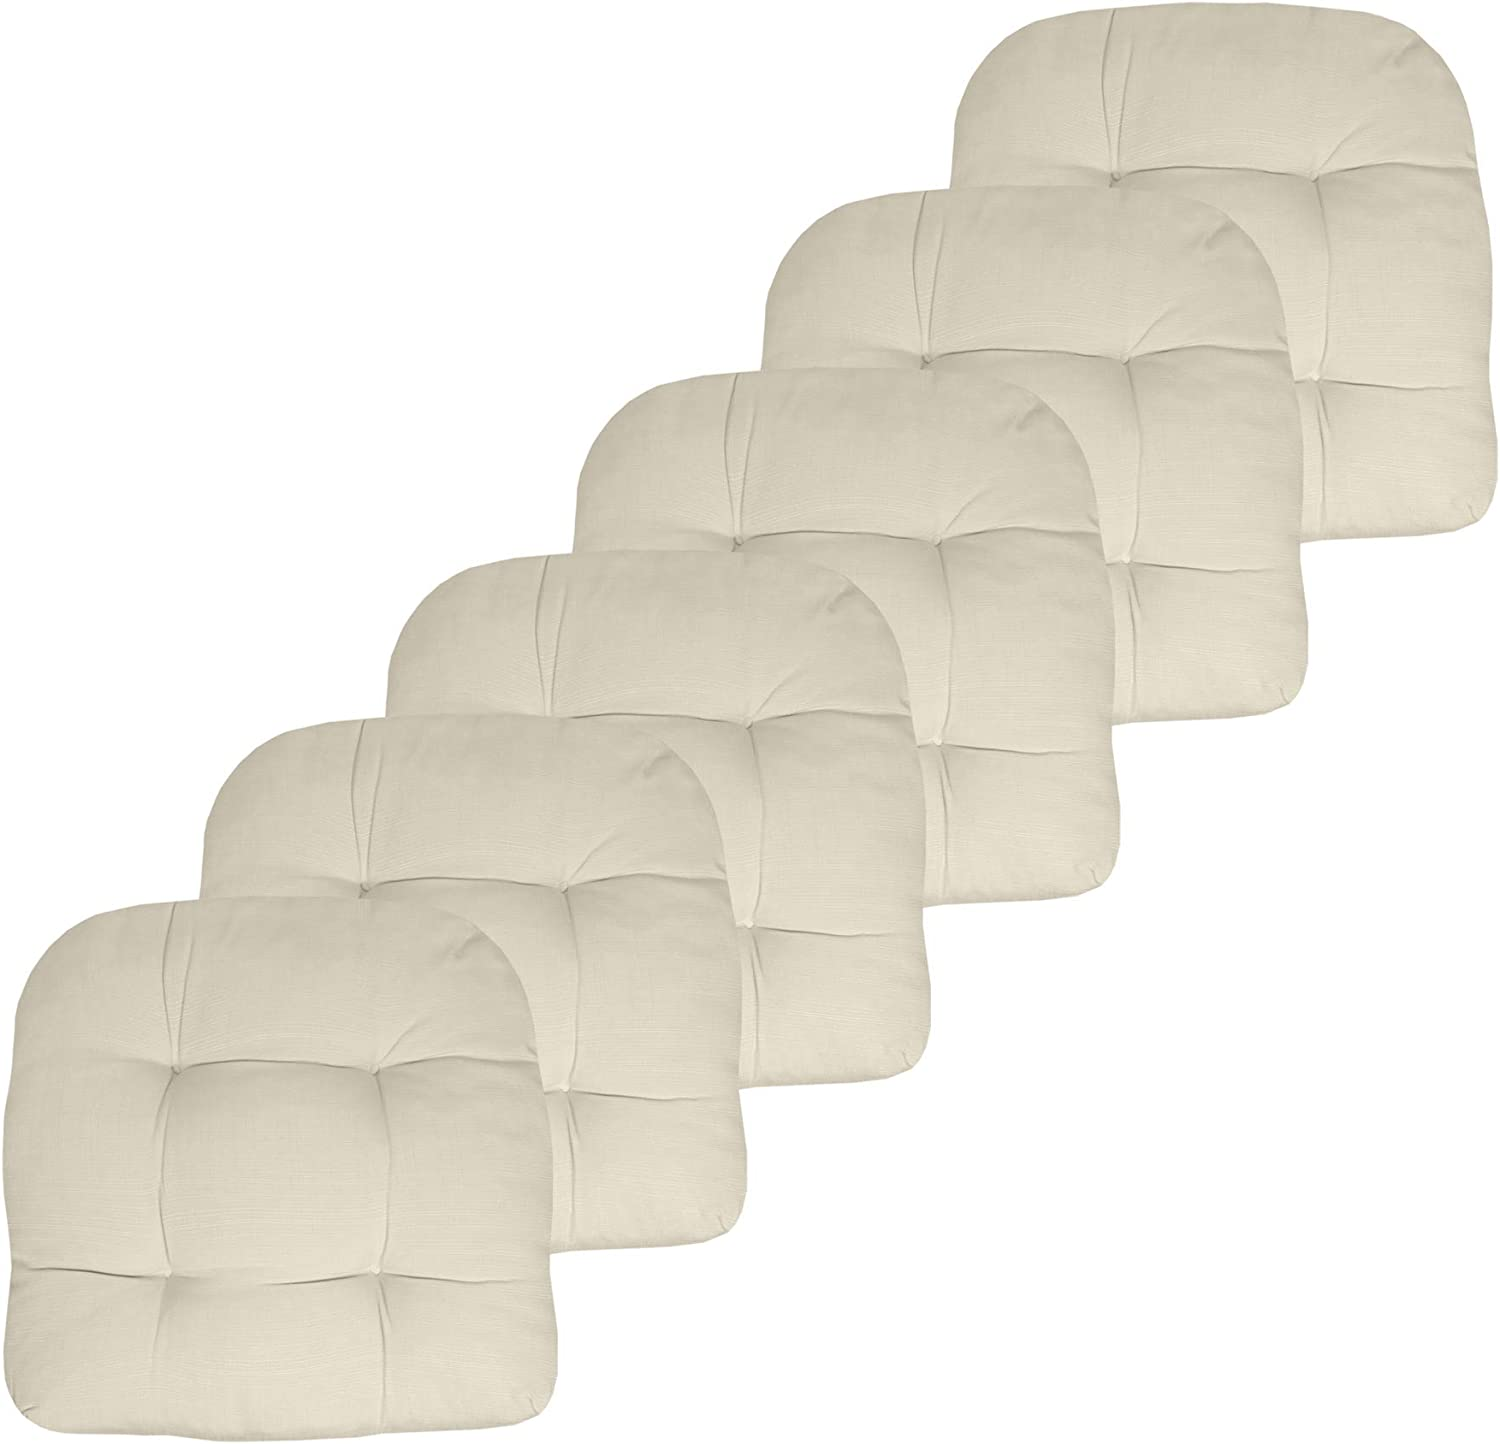 """Sweet Home Collection Patio Cushions Outdoor Chair Pads Premium Comfortable Thick Fiber Fill Tufted 19"""" x 19"""" Seat Cover, 6 Pack, Cream"""